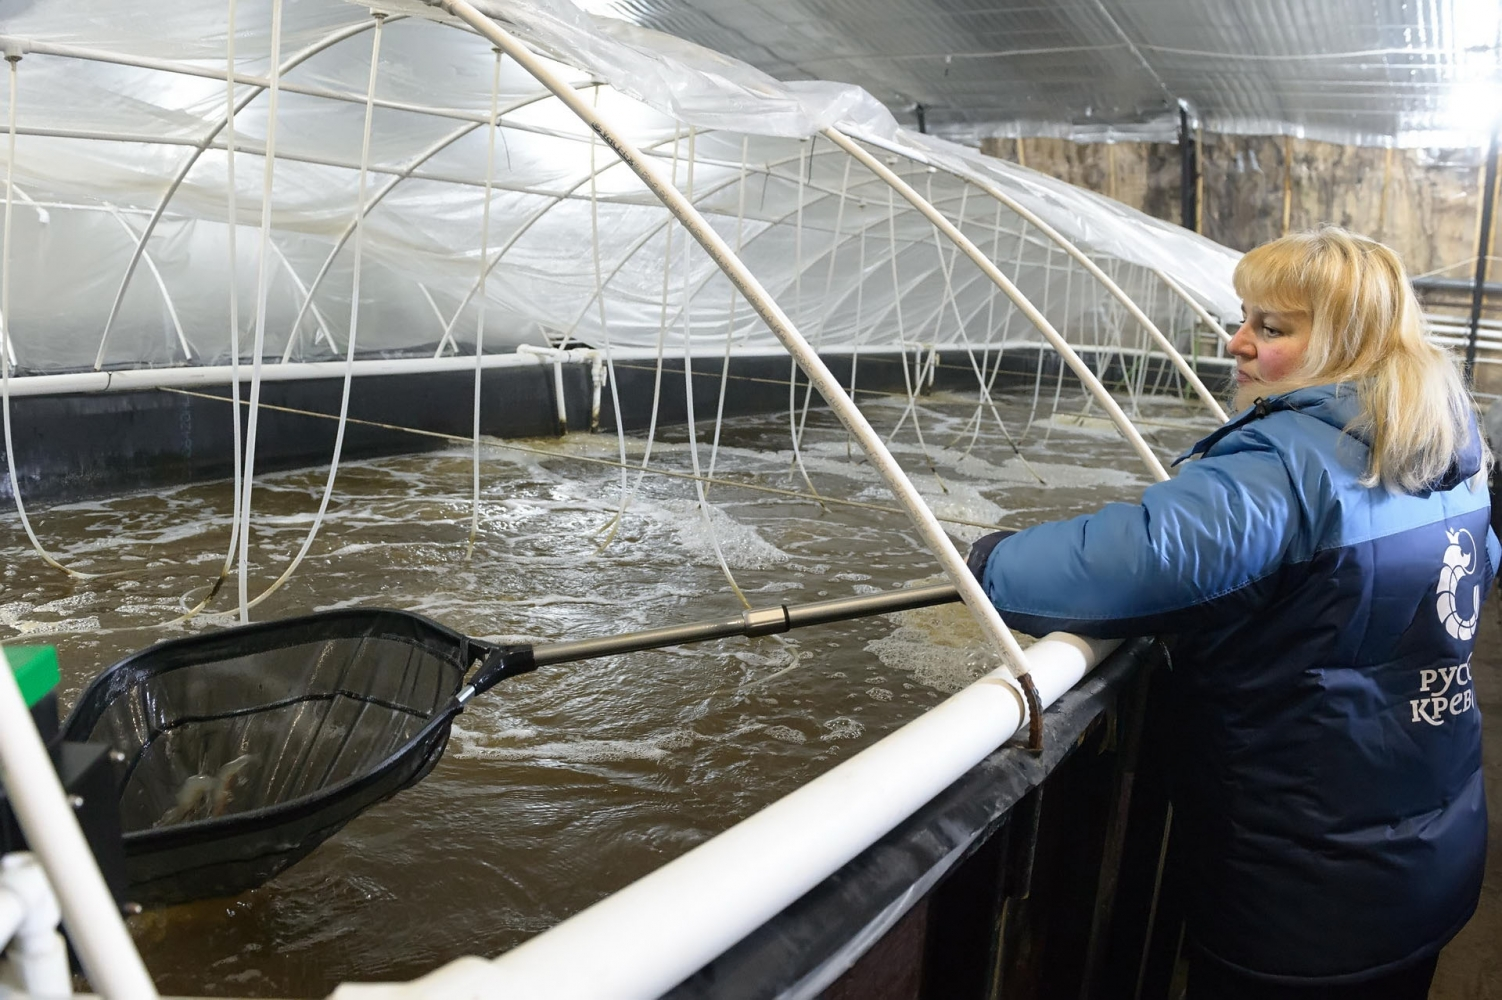 The Russia's largest shrimp farm was opened in Kaluga Region